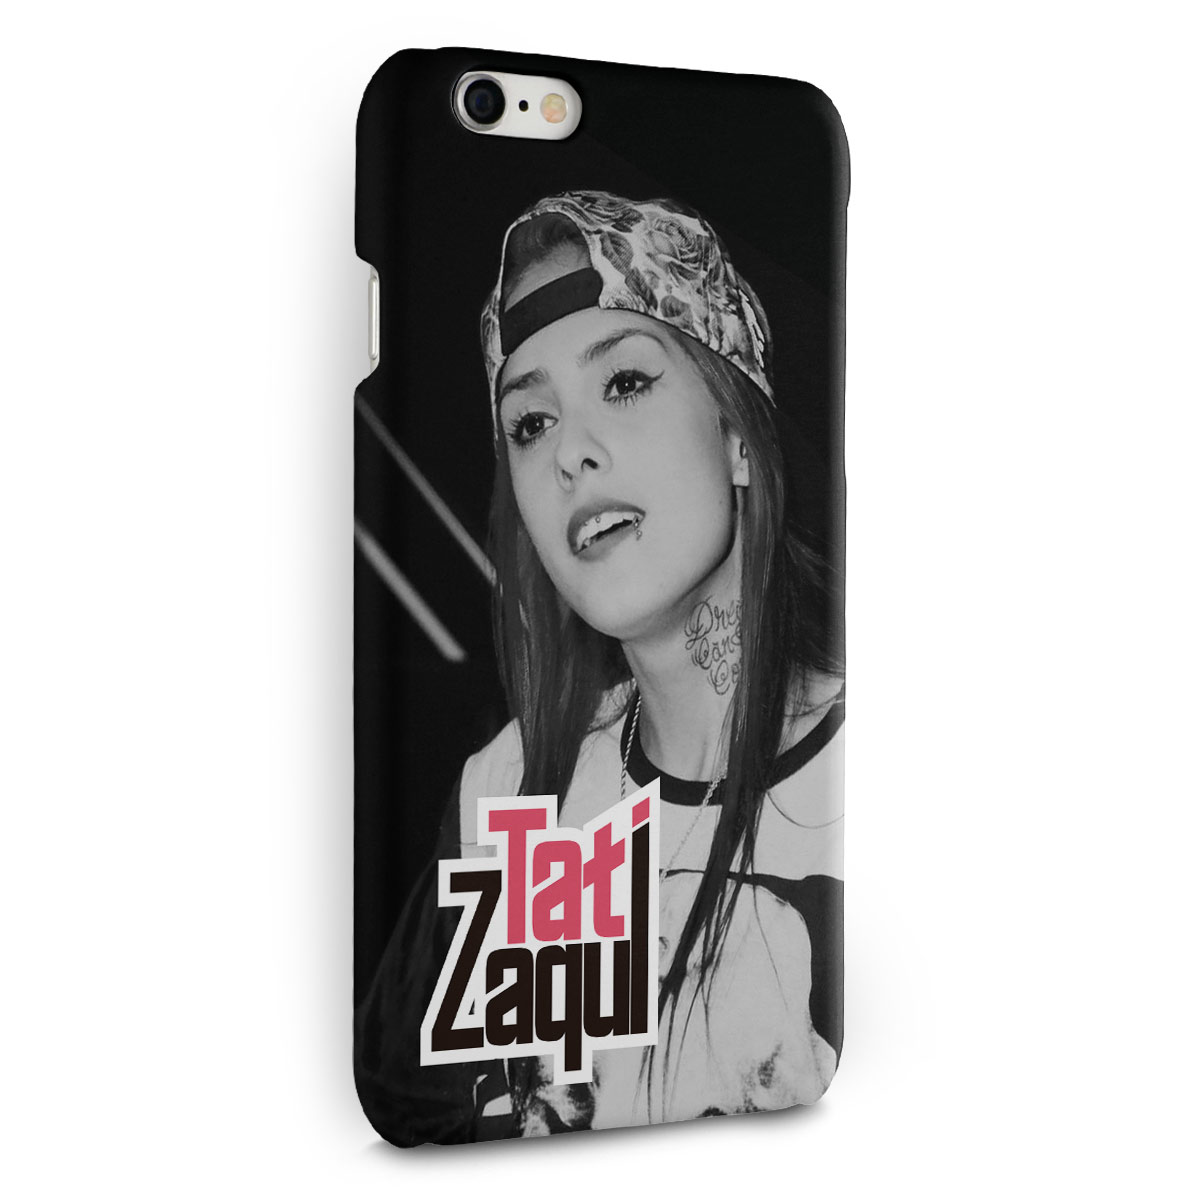 Capa para iPhone 6/6S Plus MC Tati Zaqui Foto